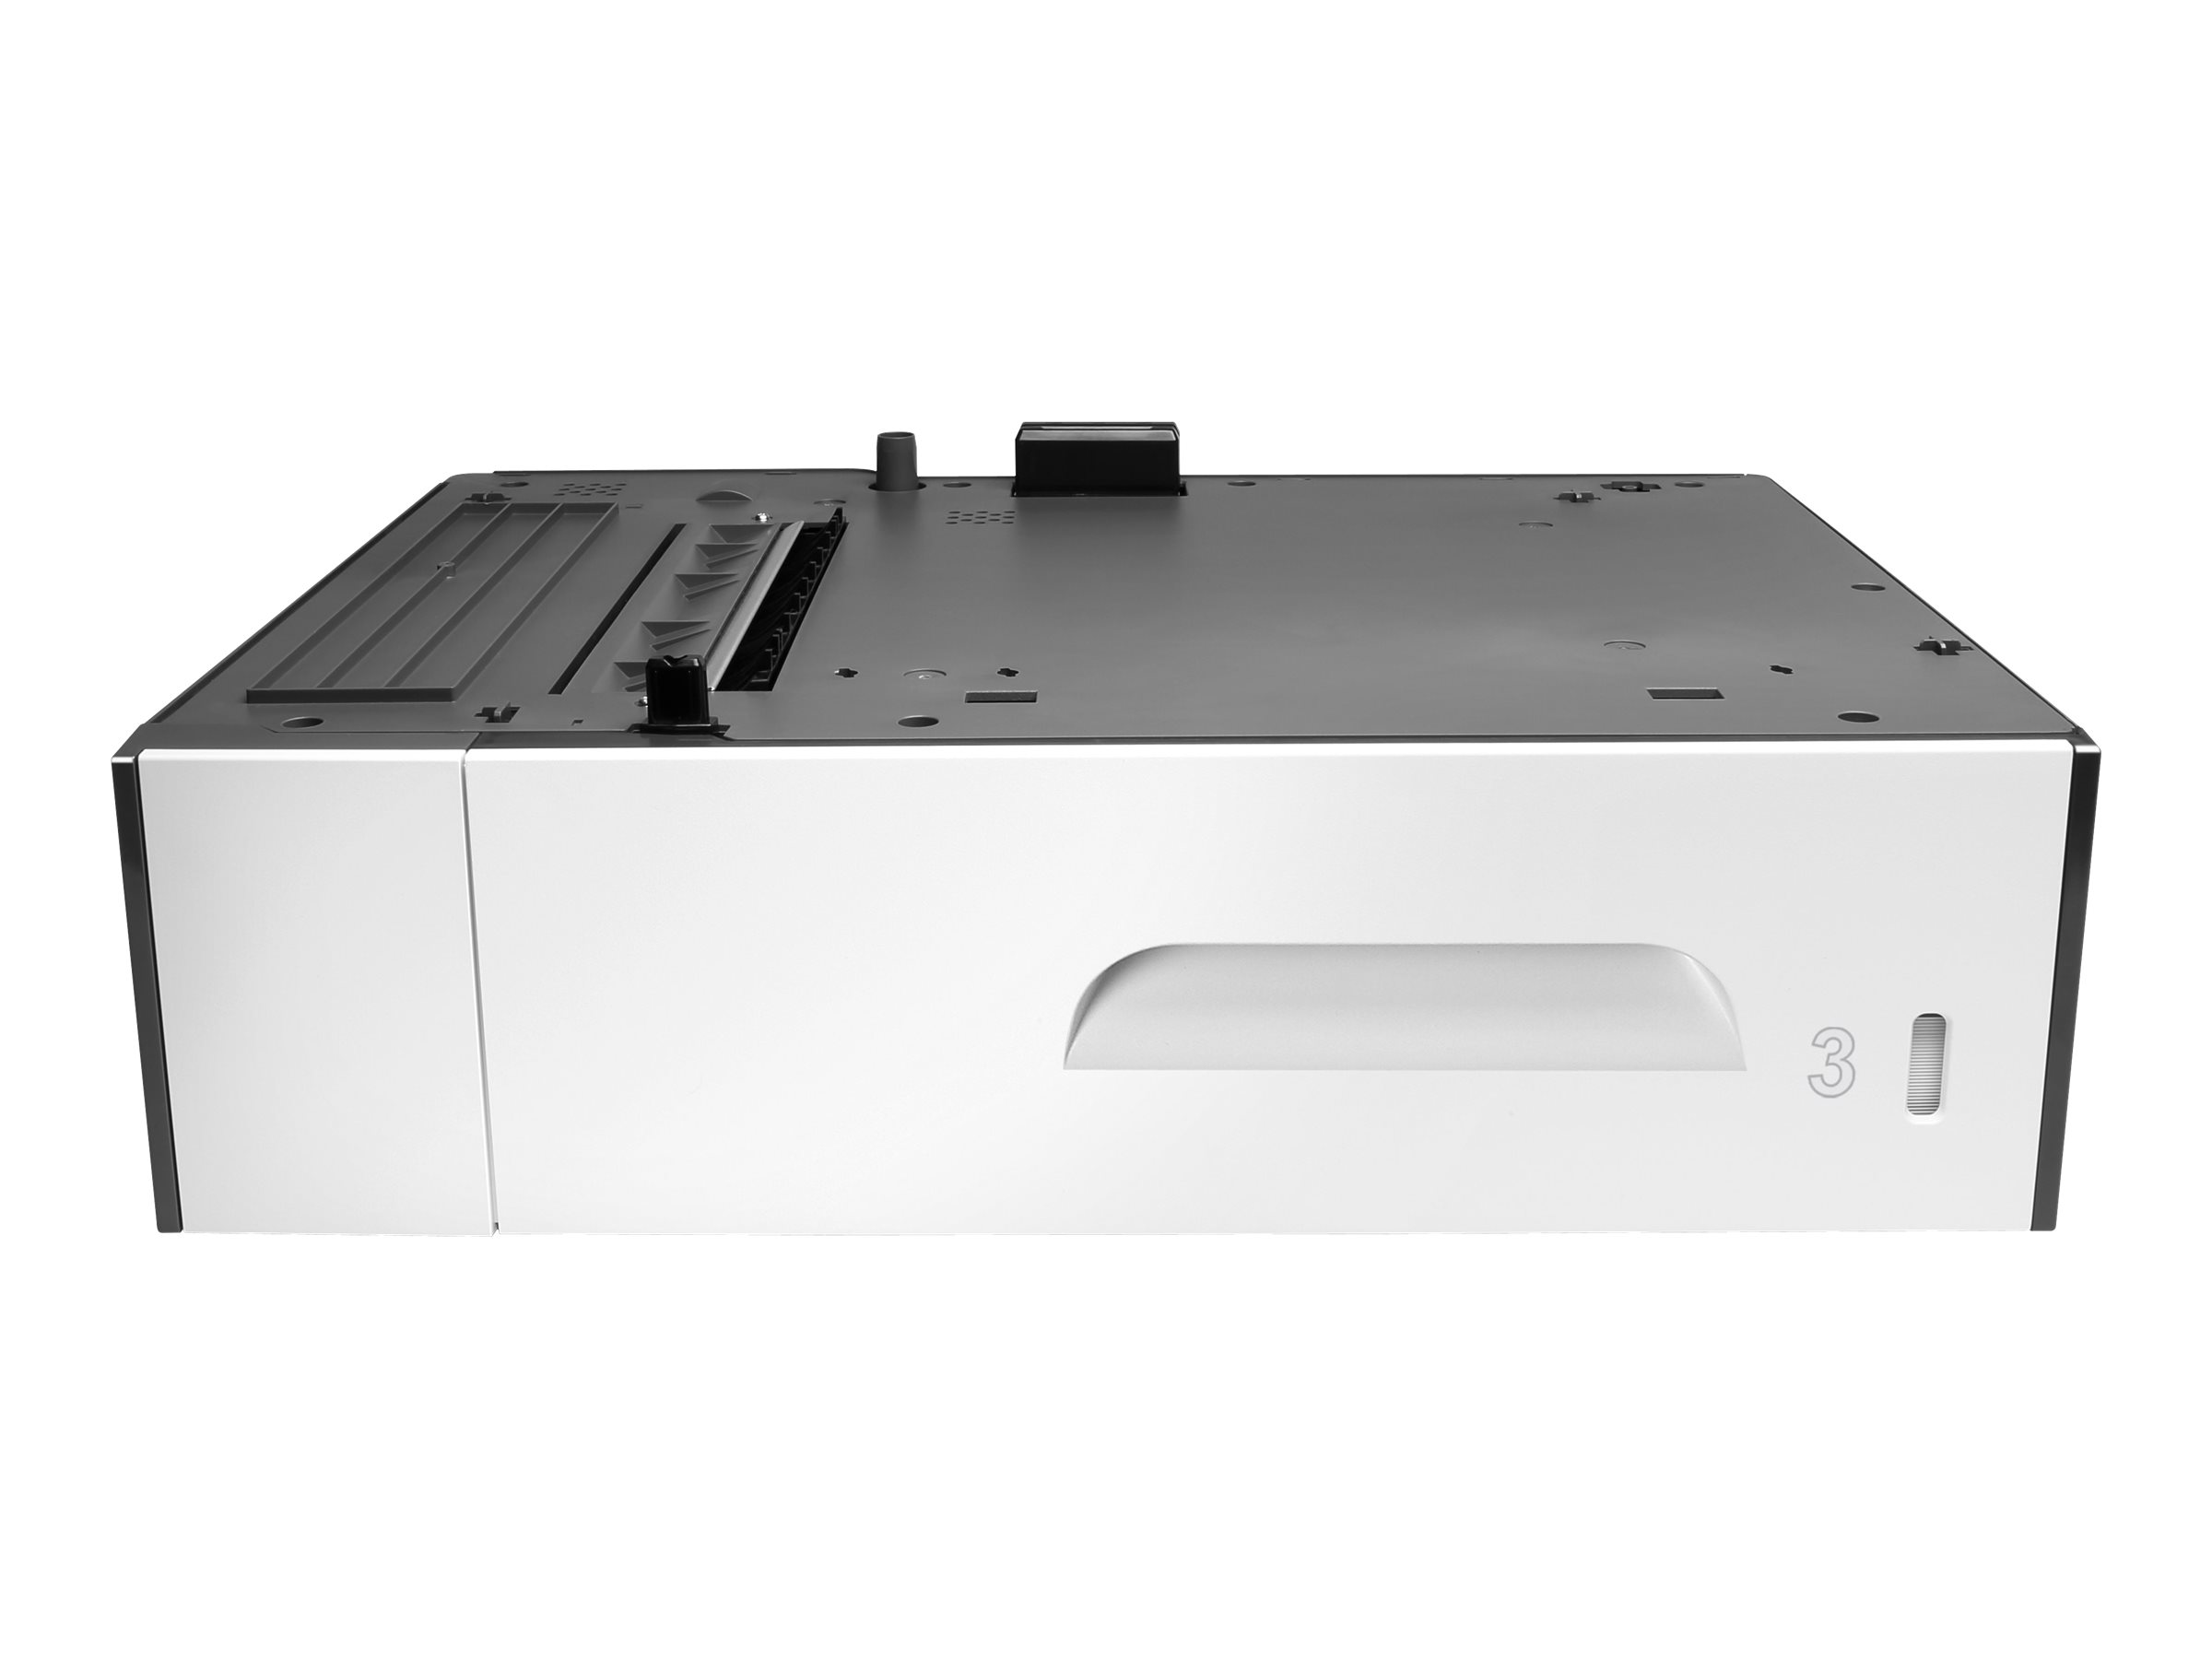 HP - Medienfach / Zuführung - 500 Blätter in 1 Schubladen (Trays) - für PageWide Enterprise Color MFP 586; PageWide Managed Color E55650